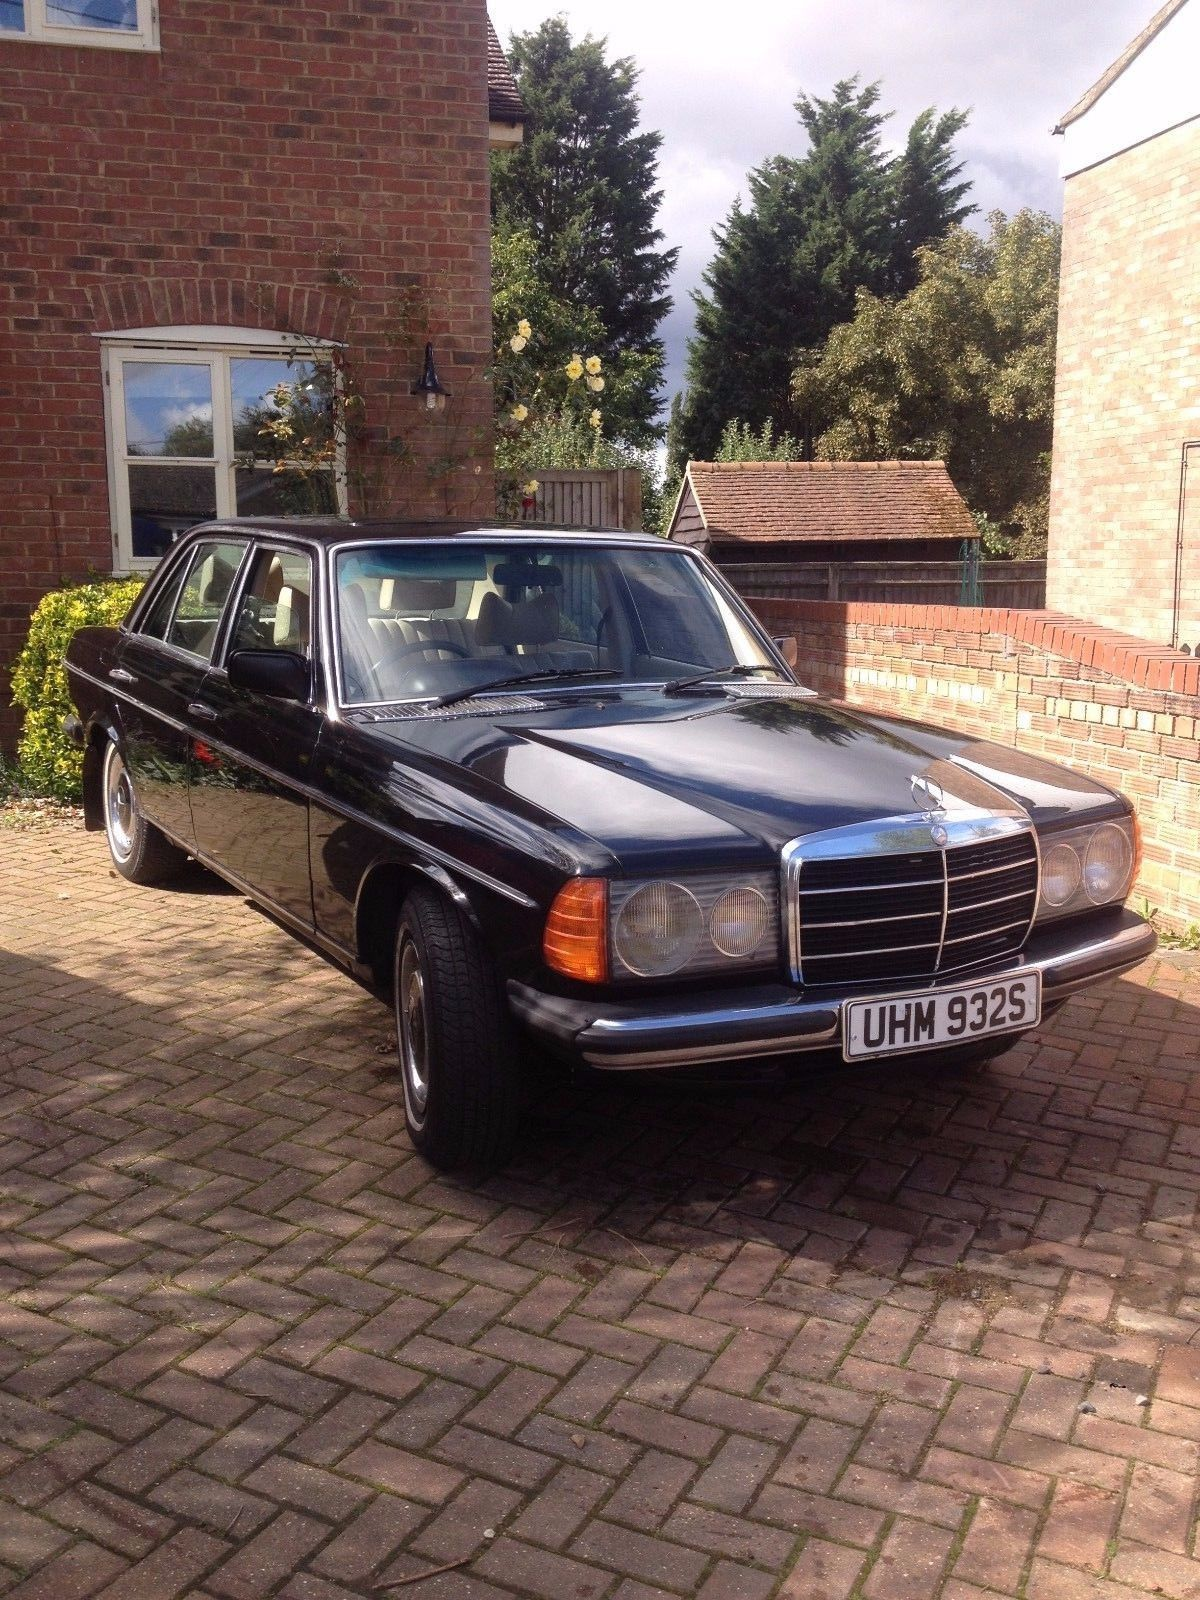 eBay: Black 1977 Mercedes Benz W123 300D MOT Daily Runner/Project For Sale #